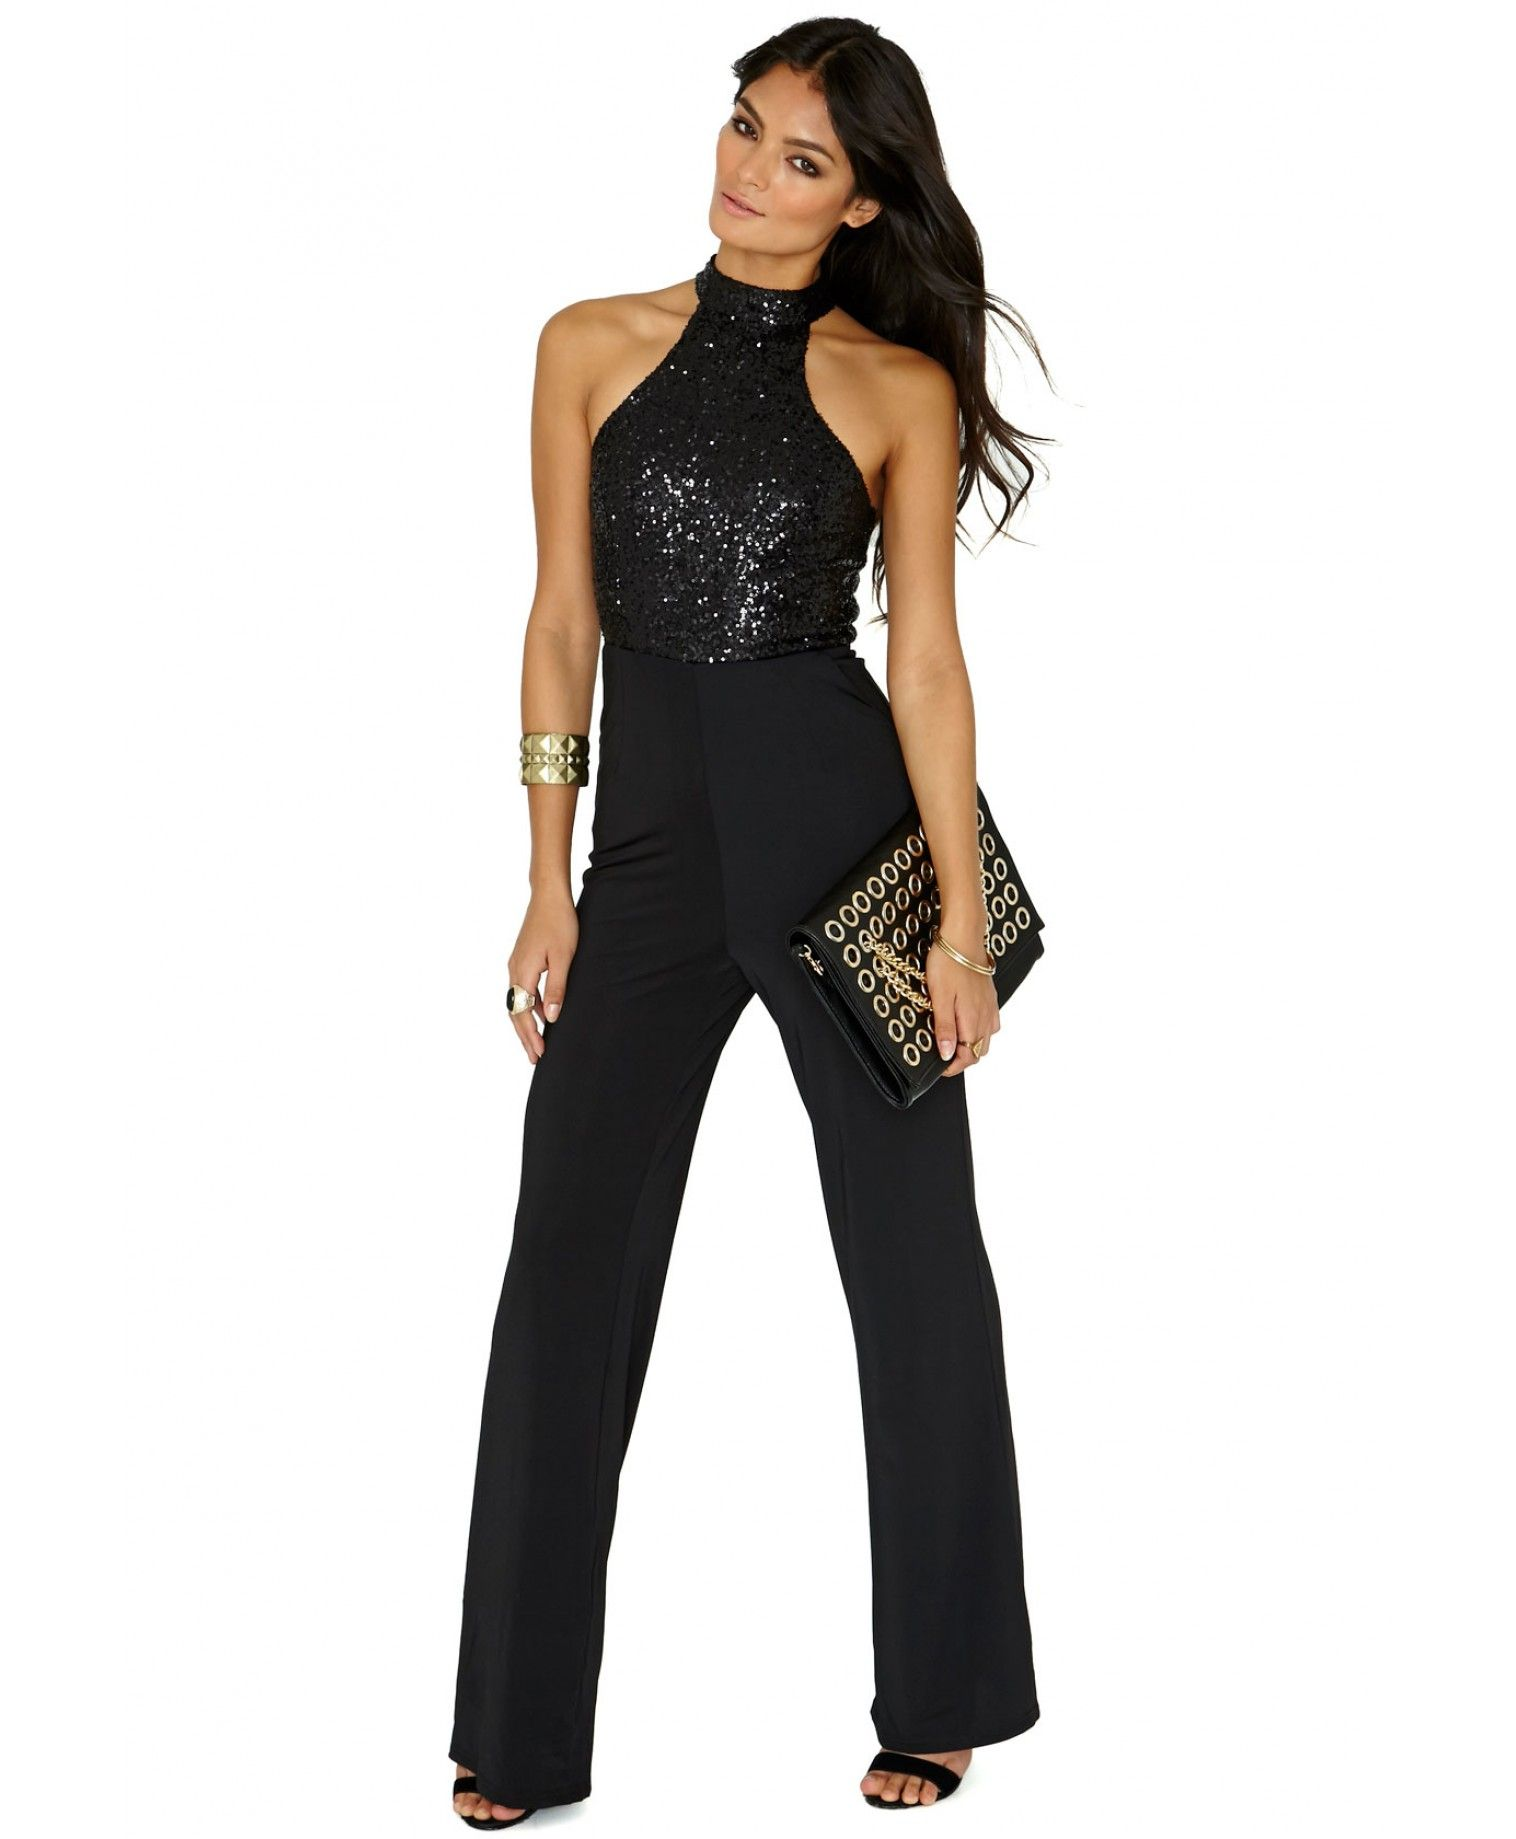 014a976700 Shelley High Neck Sequin Jumpsuit - Jumpsuits   Playsuits - Clothing -  Missguided